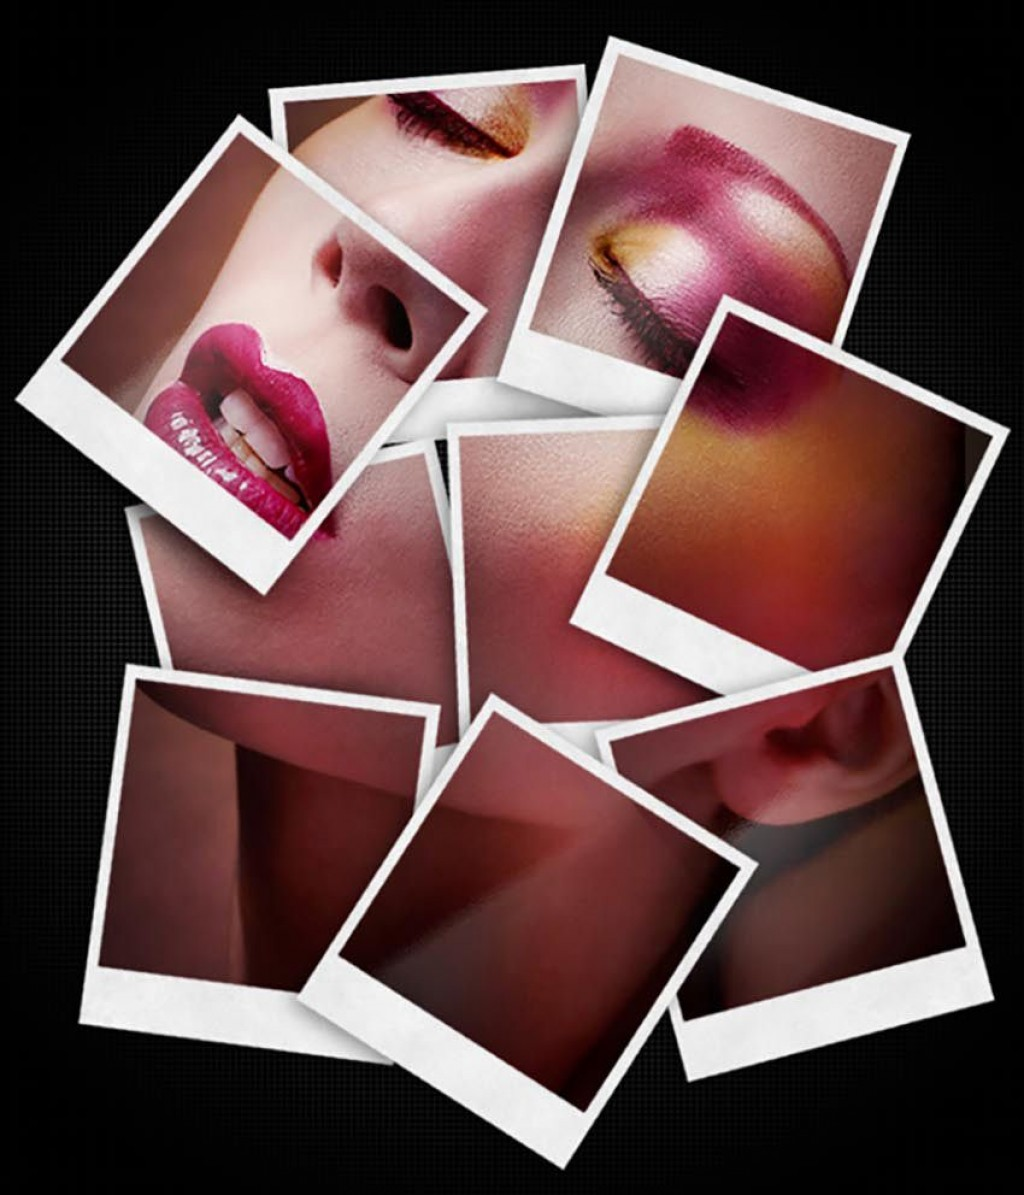 004 Excellent Free Photoshop Collage Template High Definition  Templates Psd Download Photo For ElementLarge